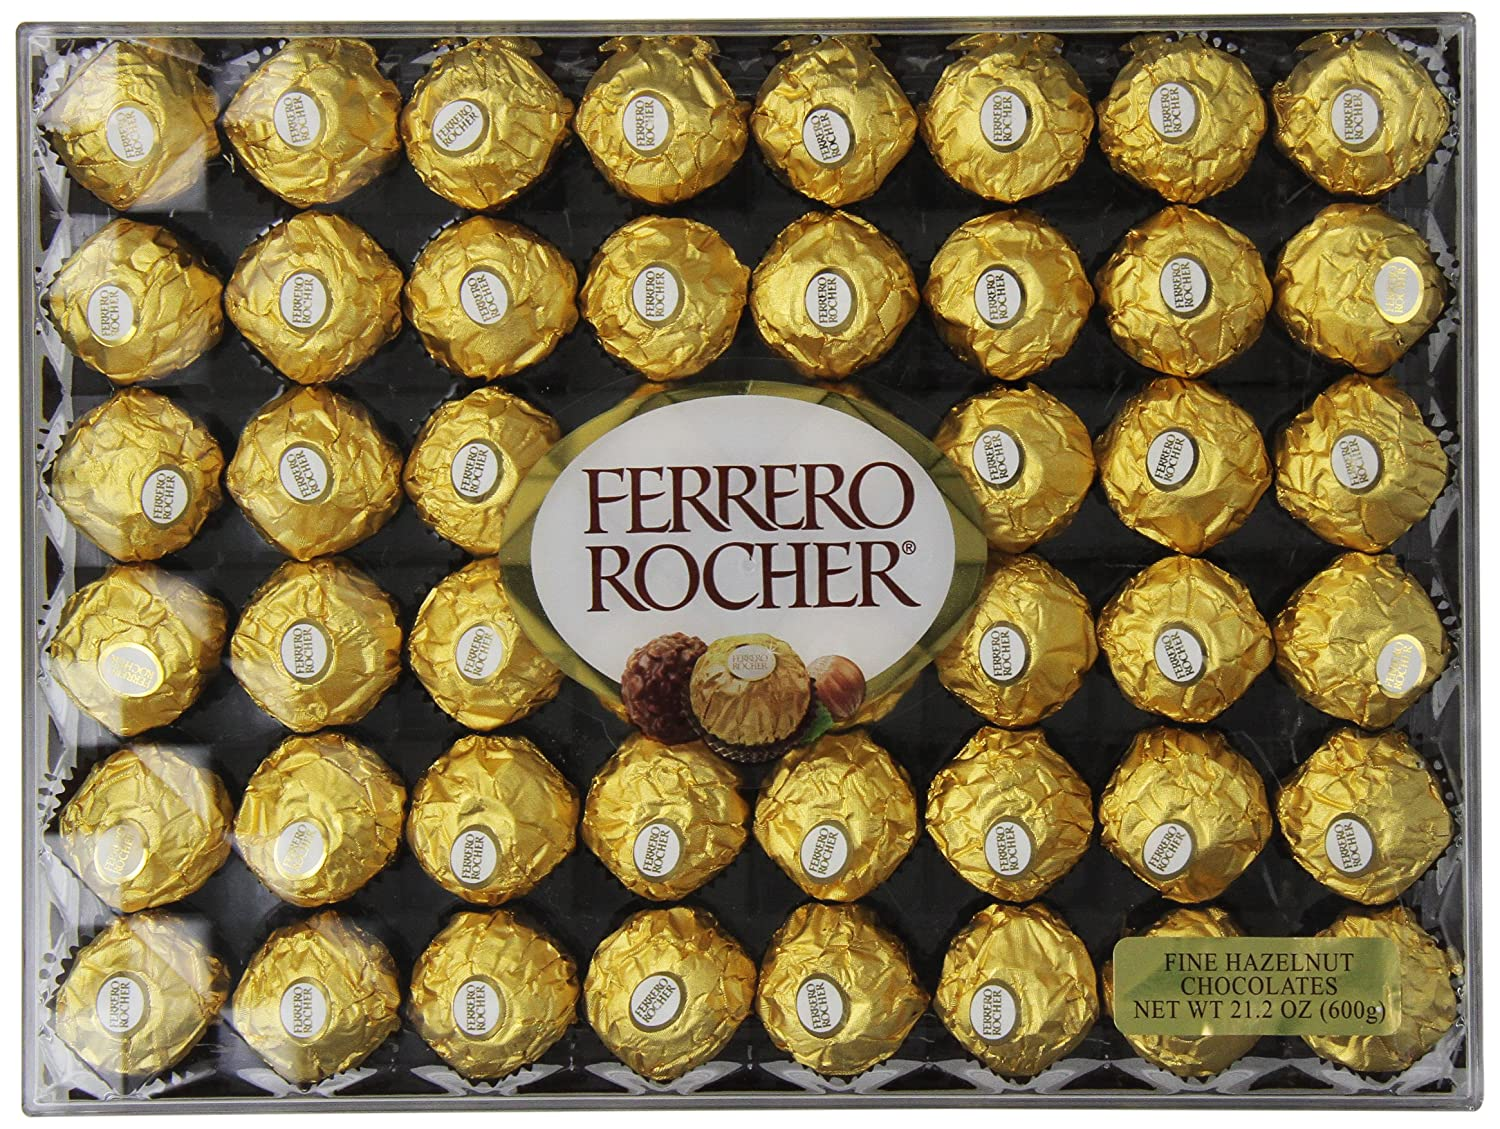 Amazon.com : Ferrero Rocher Hazelnut Chocolates, 48 Count ...